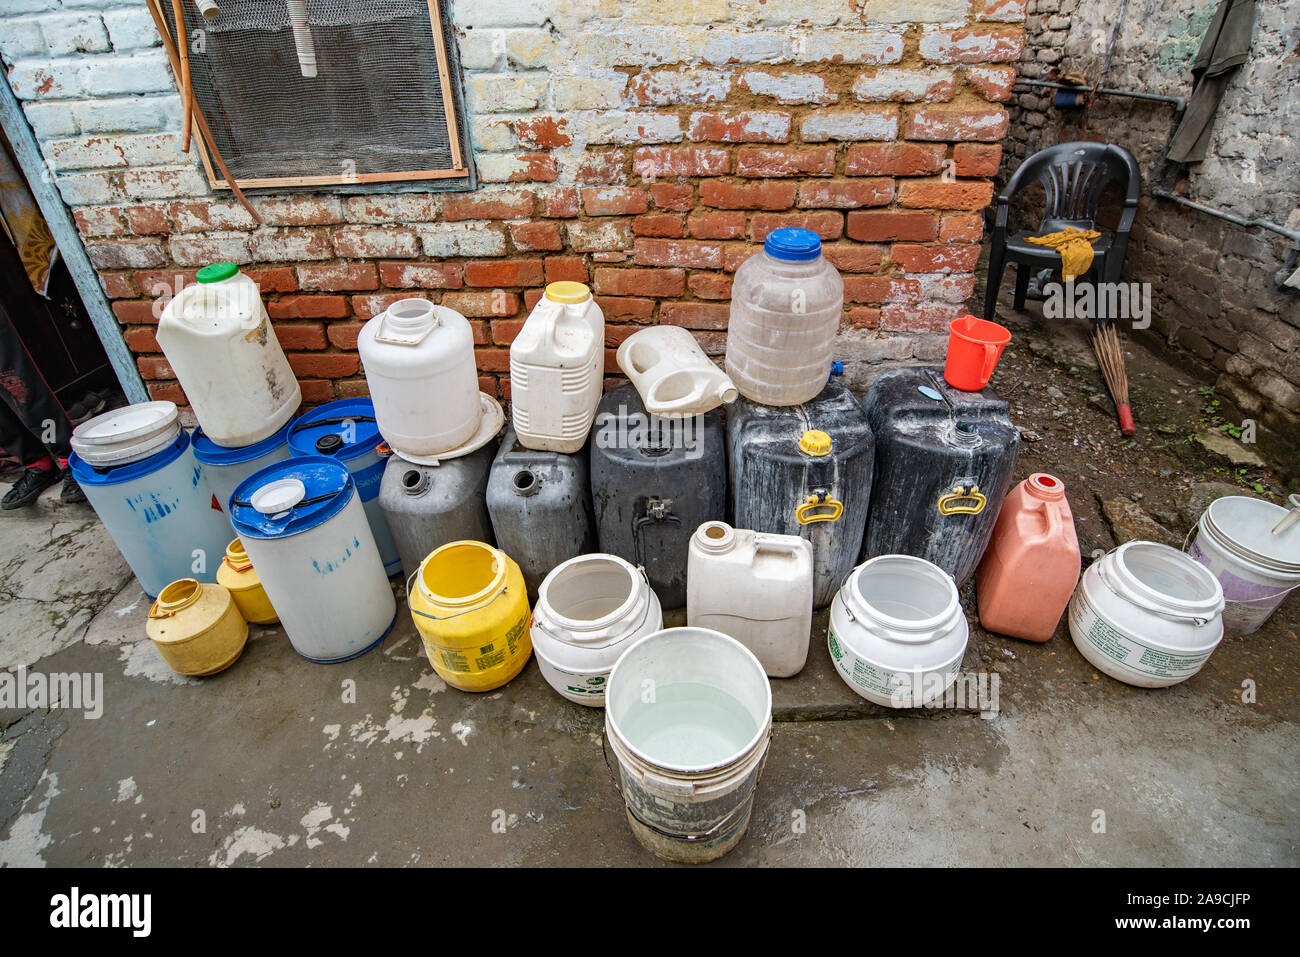 The difficulties of Shimla's residents in accessing clean drinking water is made explicit by these plastic containers outside the home Stock Photo